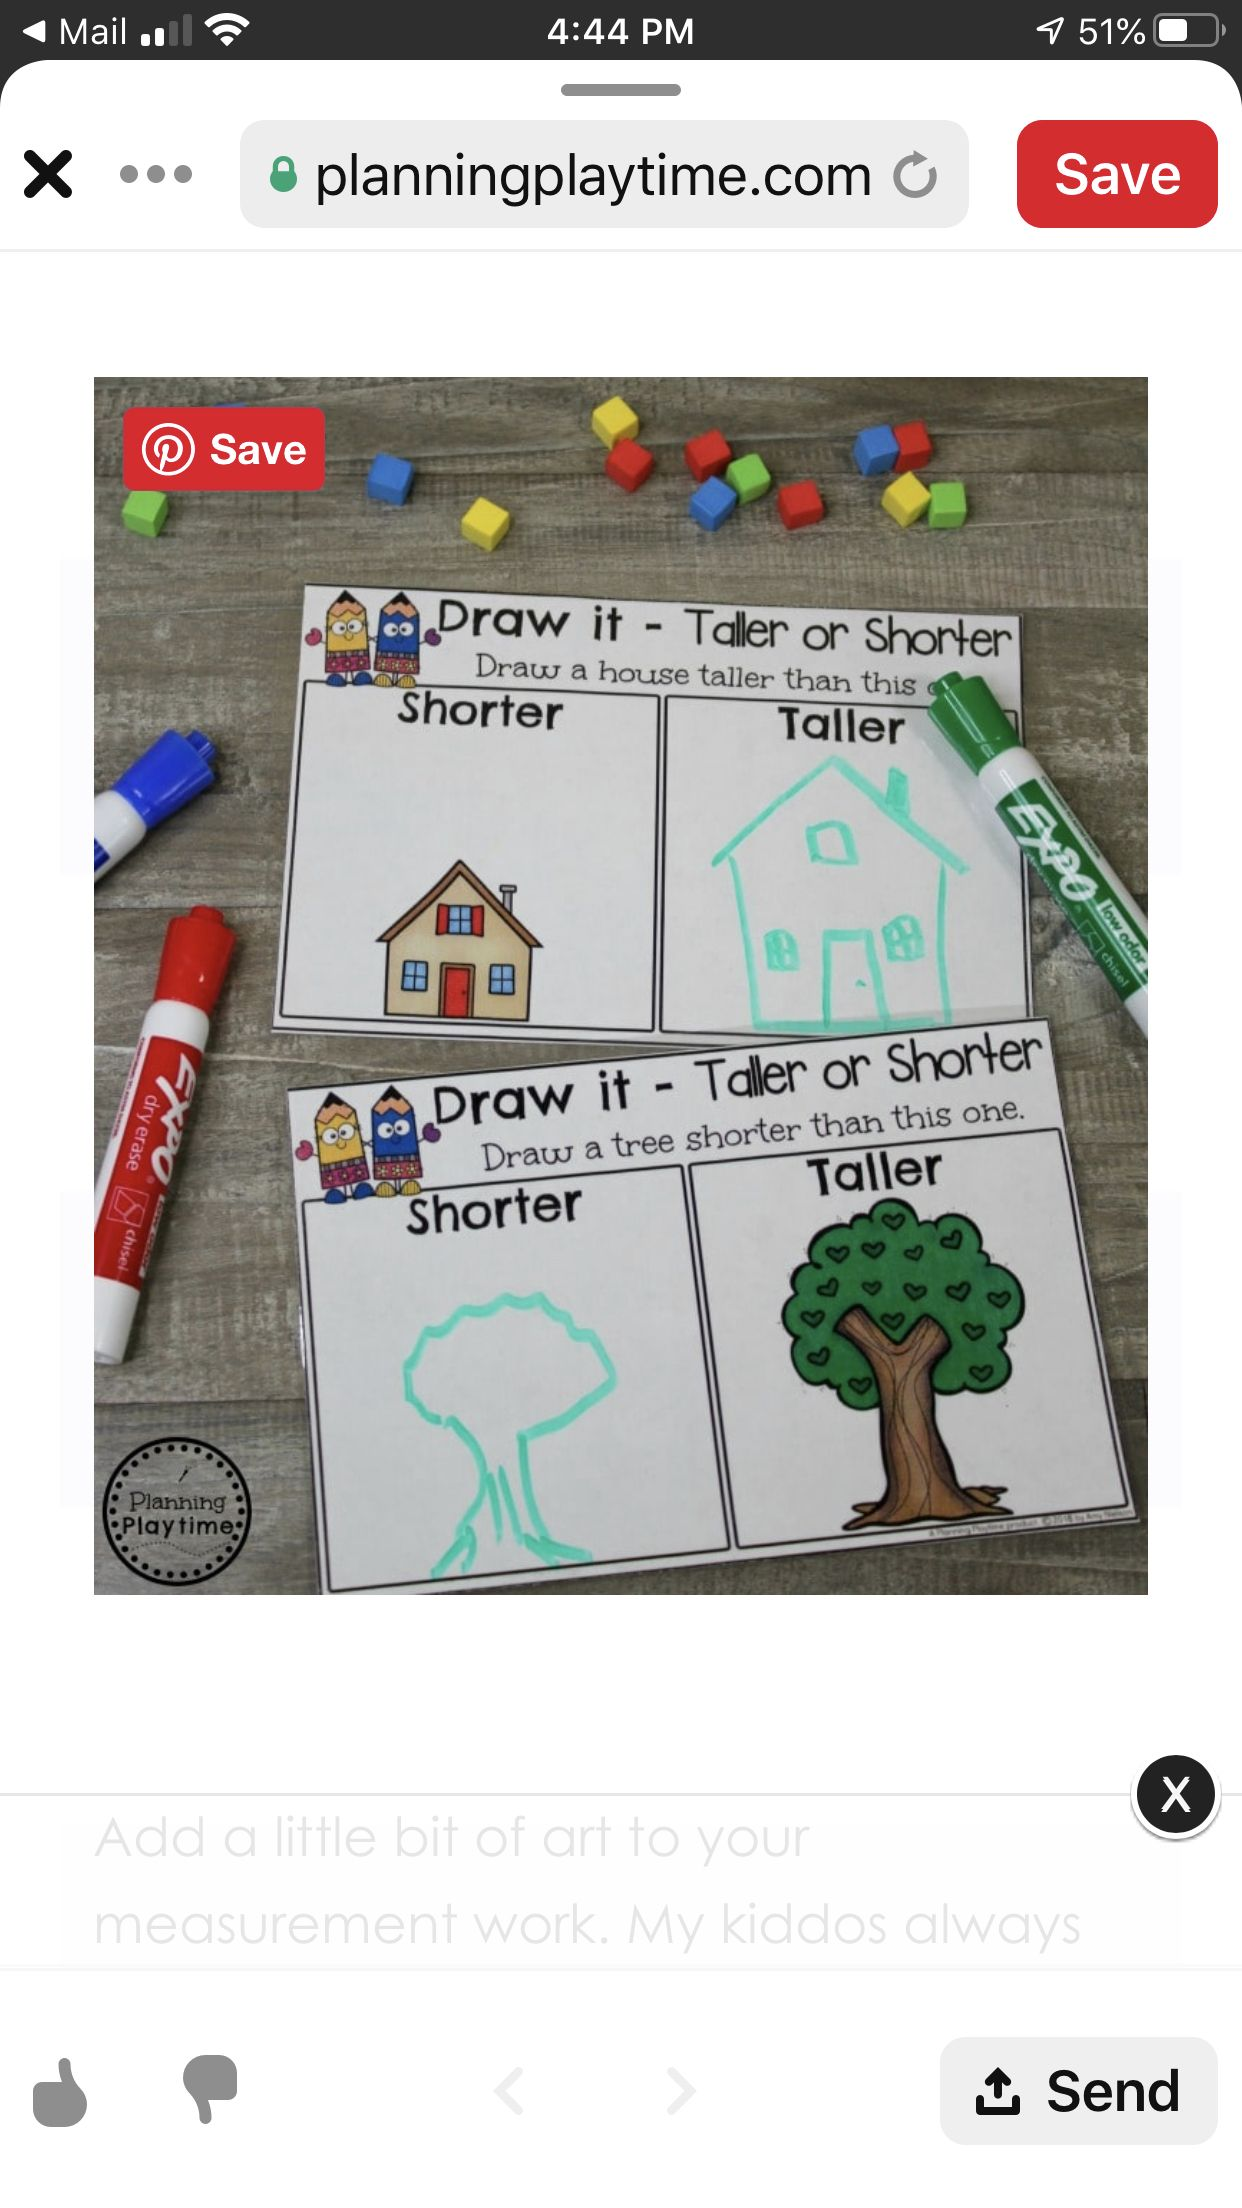 Pin by H on Math in 2020 Shorts drawing, Math, Play time